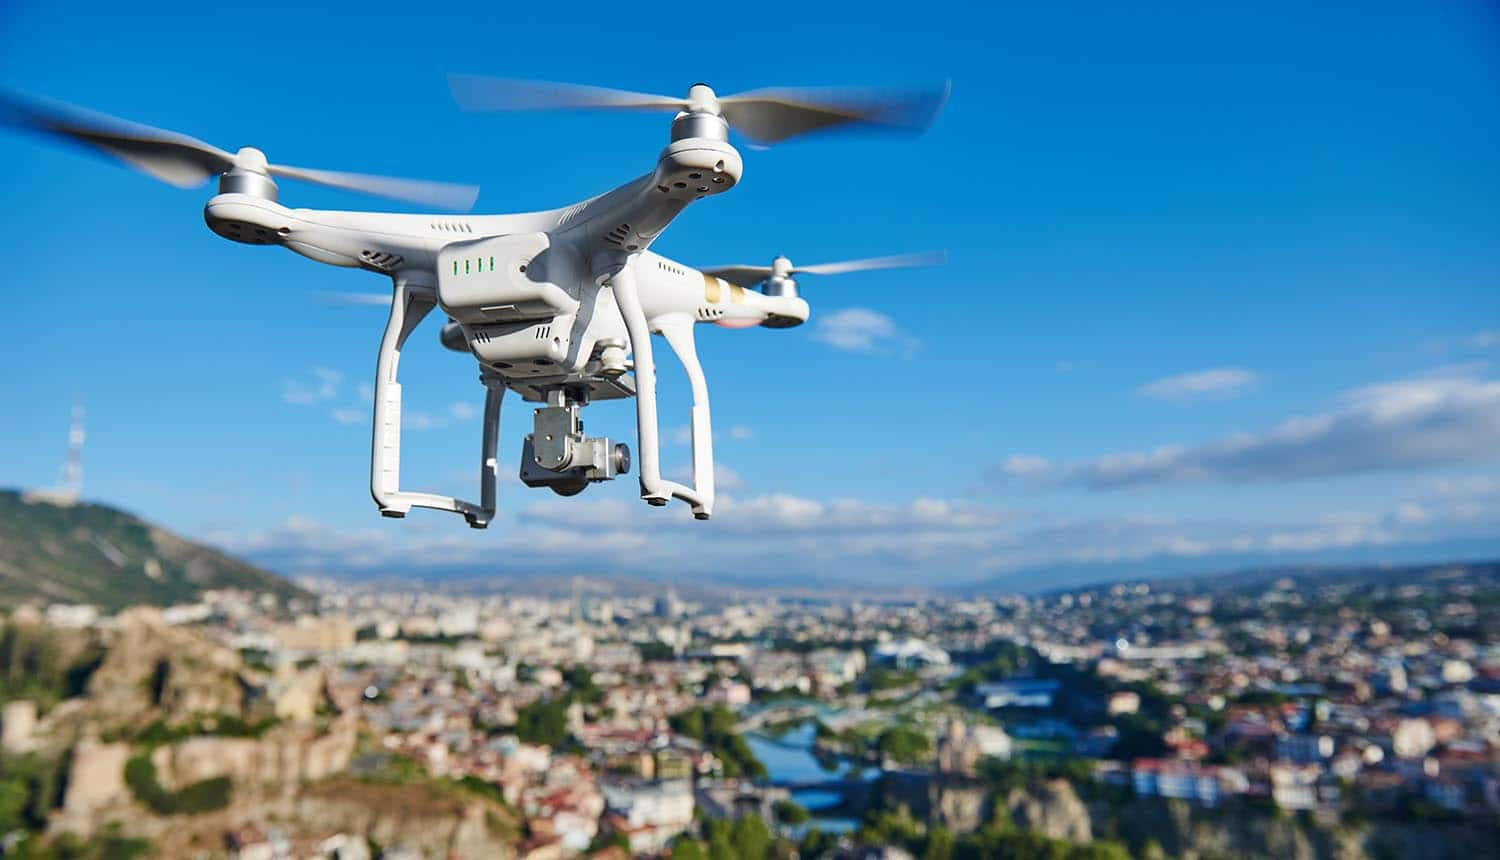 Image of drone flying as a eye in the sky against city backdrop signifying drone surveillance and the concern with privacy